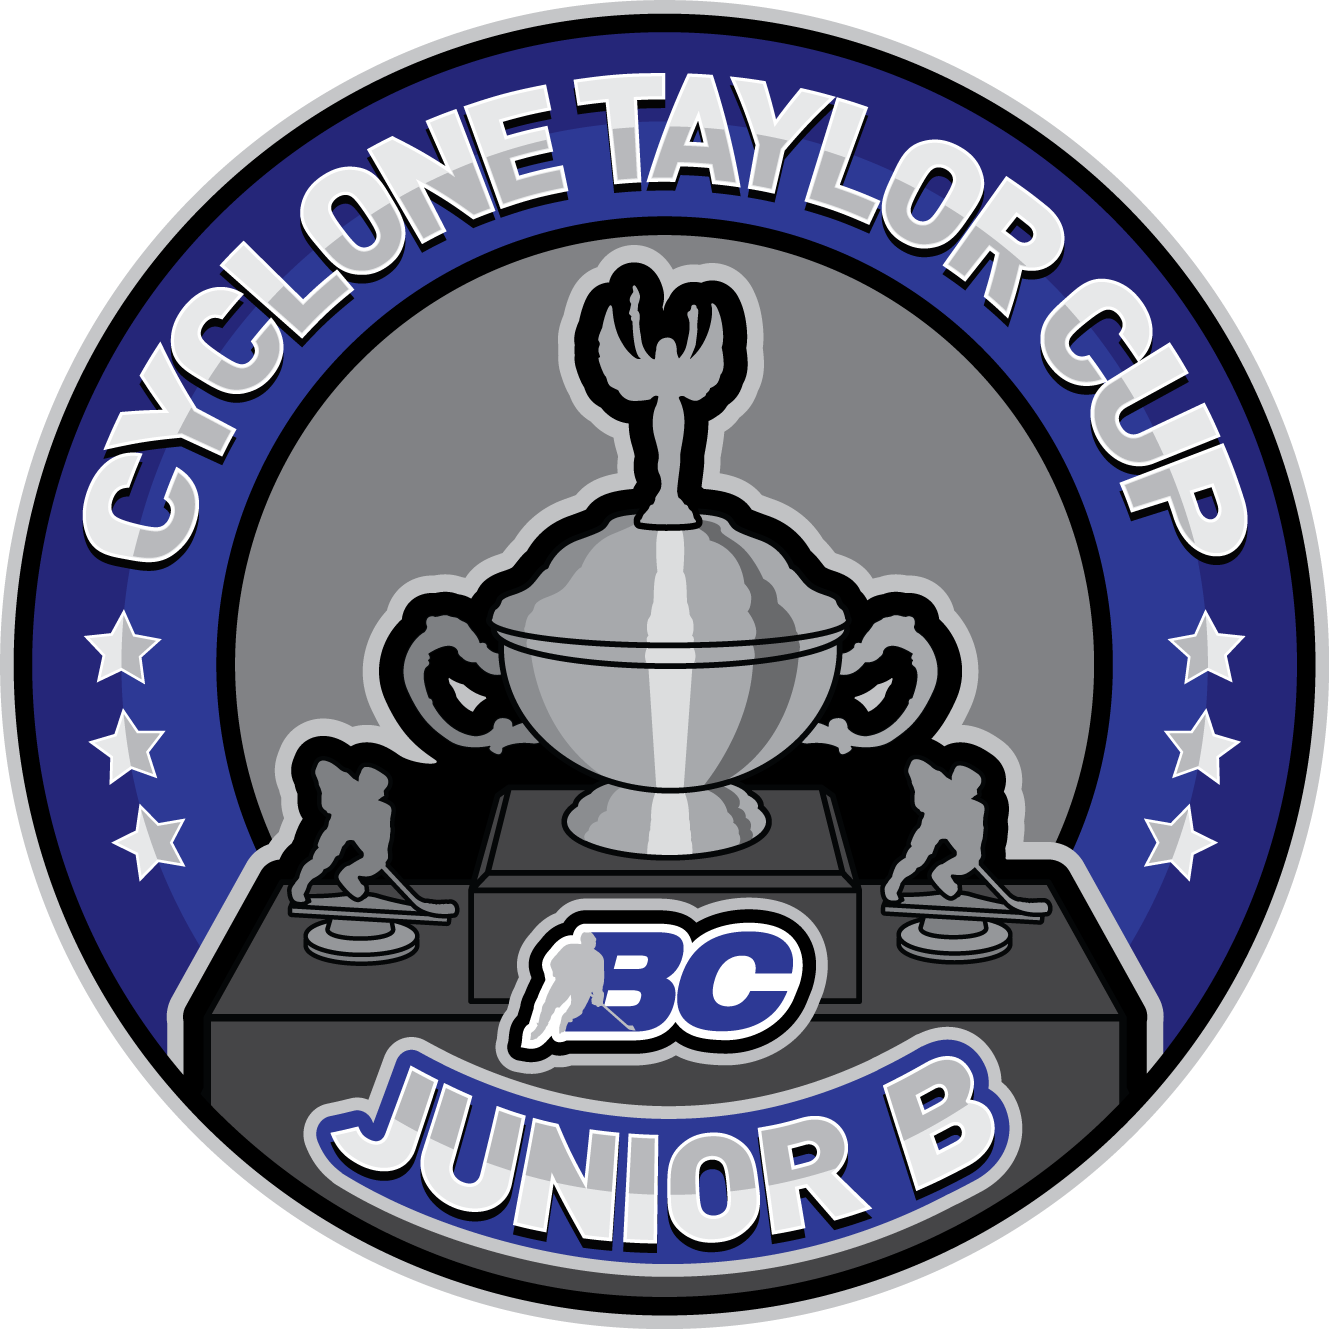 Thunder Cats ready for day two of 2017 Cyclone Taylor Cup